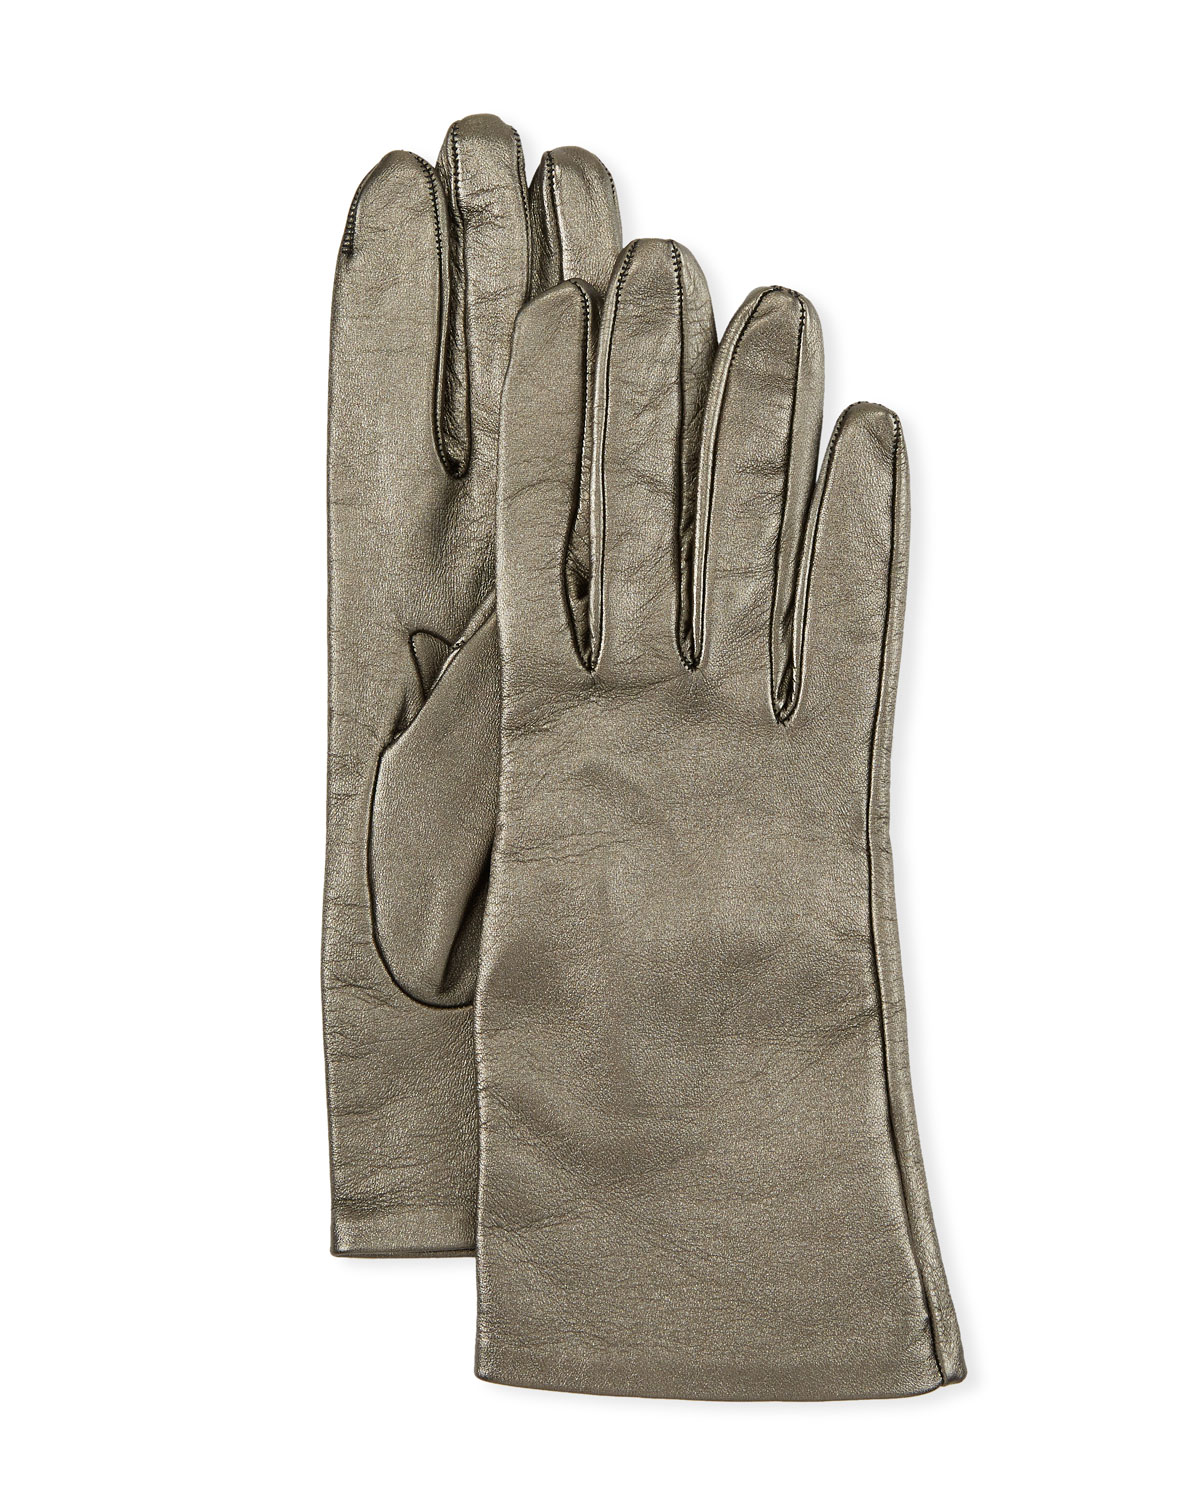 Metallic Napa Leather Gloves in Anthracite